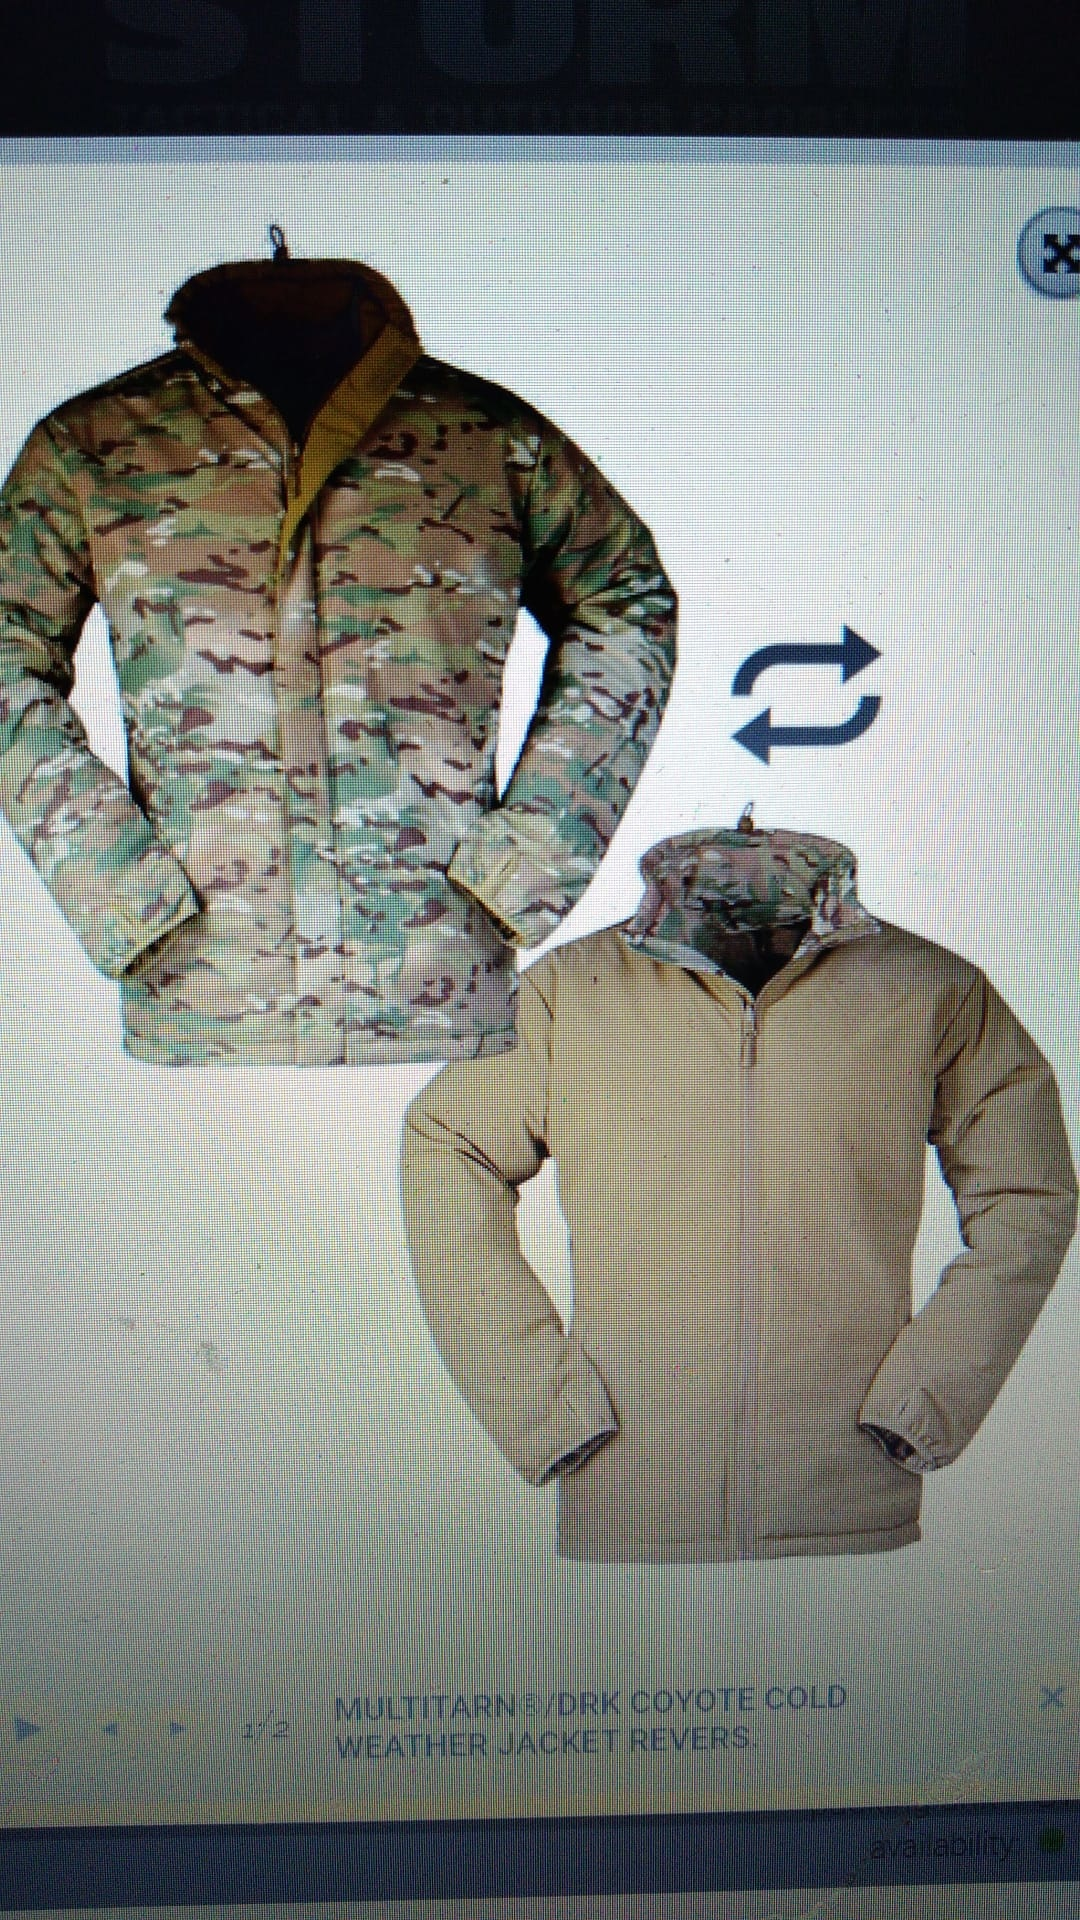 Multi Cam / Coyote    WEATHER JACKET REVERSIBLE